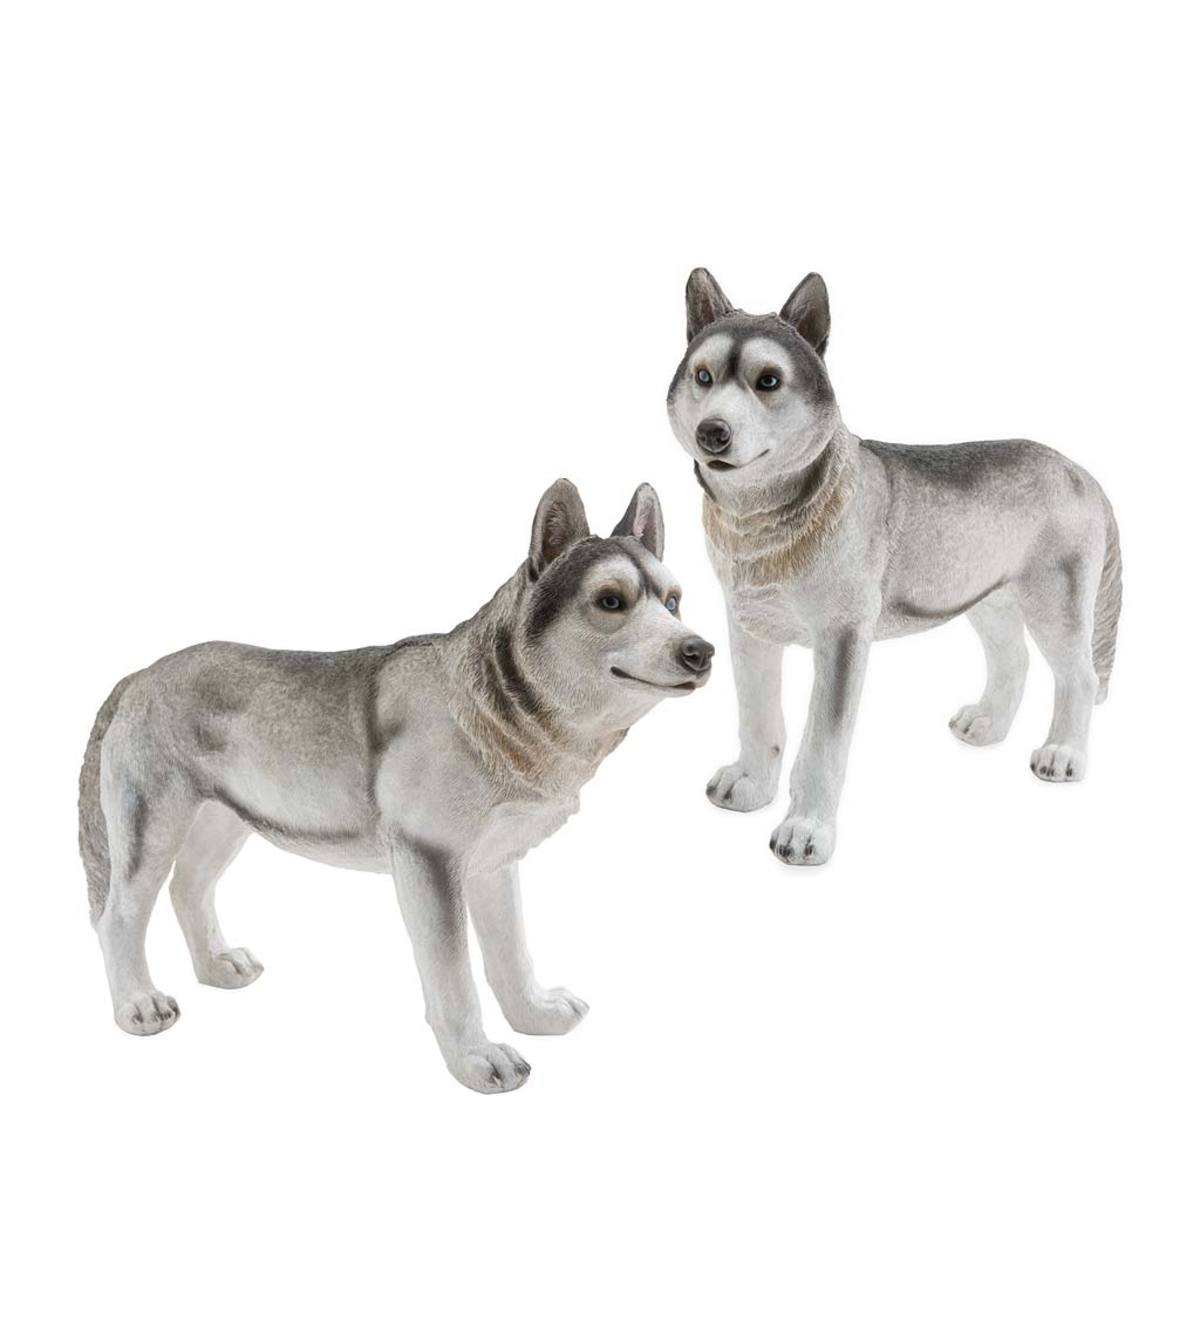 Siberian Husky Dog Statues, Set of 2